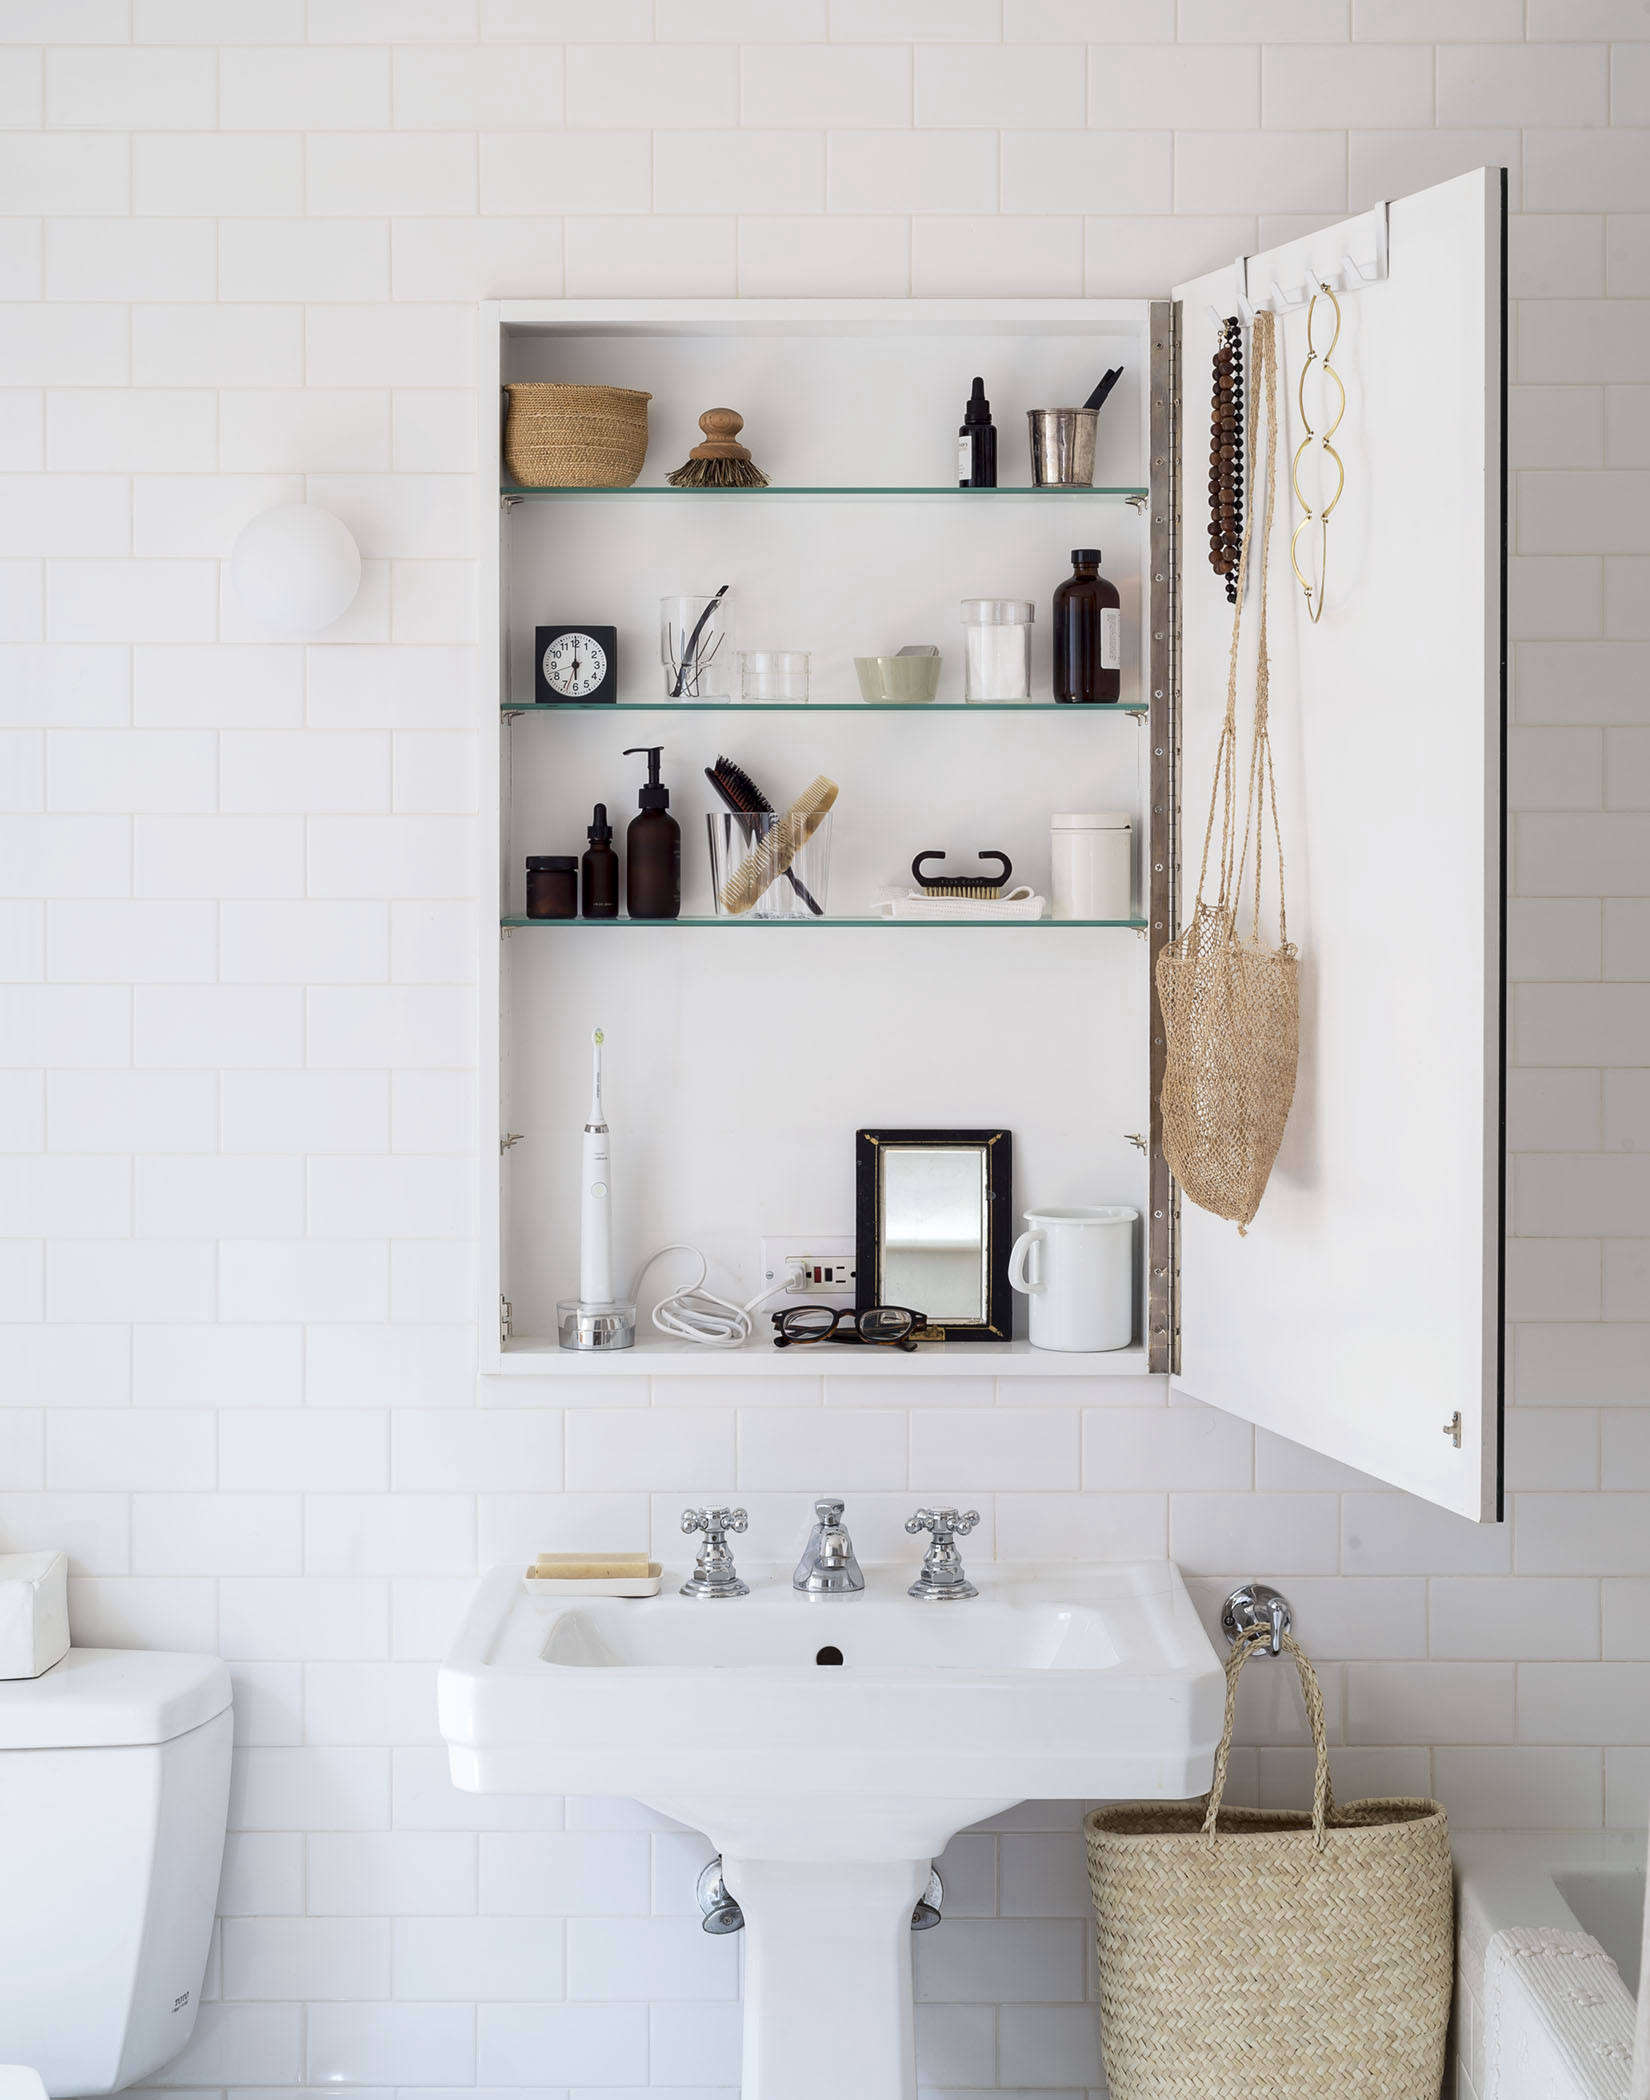 Bathroom Electrical Outlet 10 Things Nobody Tells You About Bathroom Storage